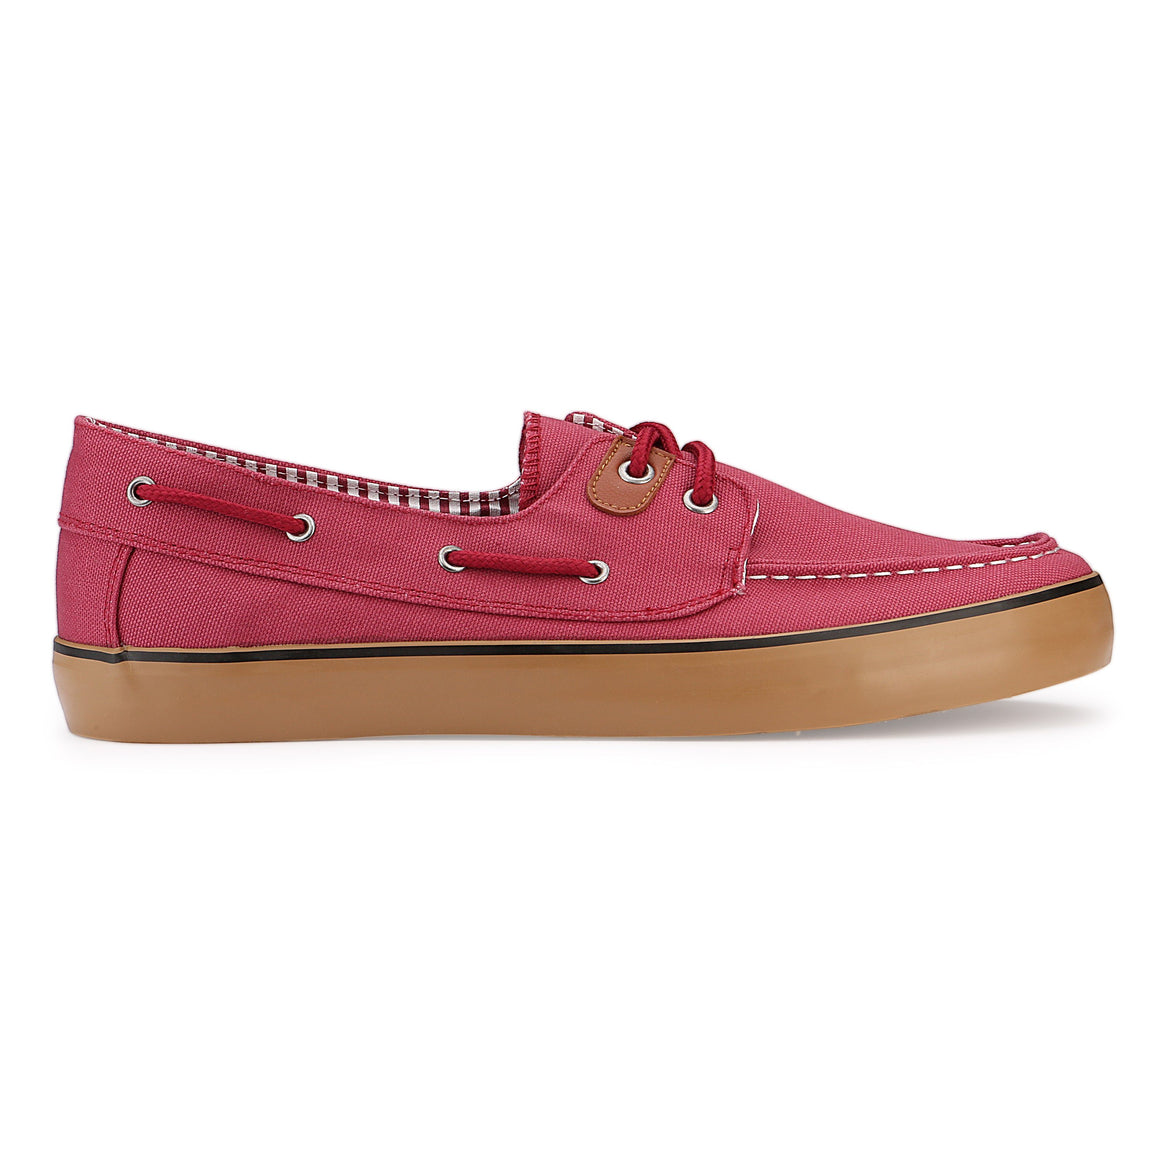 Xray Men's The Sangay Casual Boat shoe RED